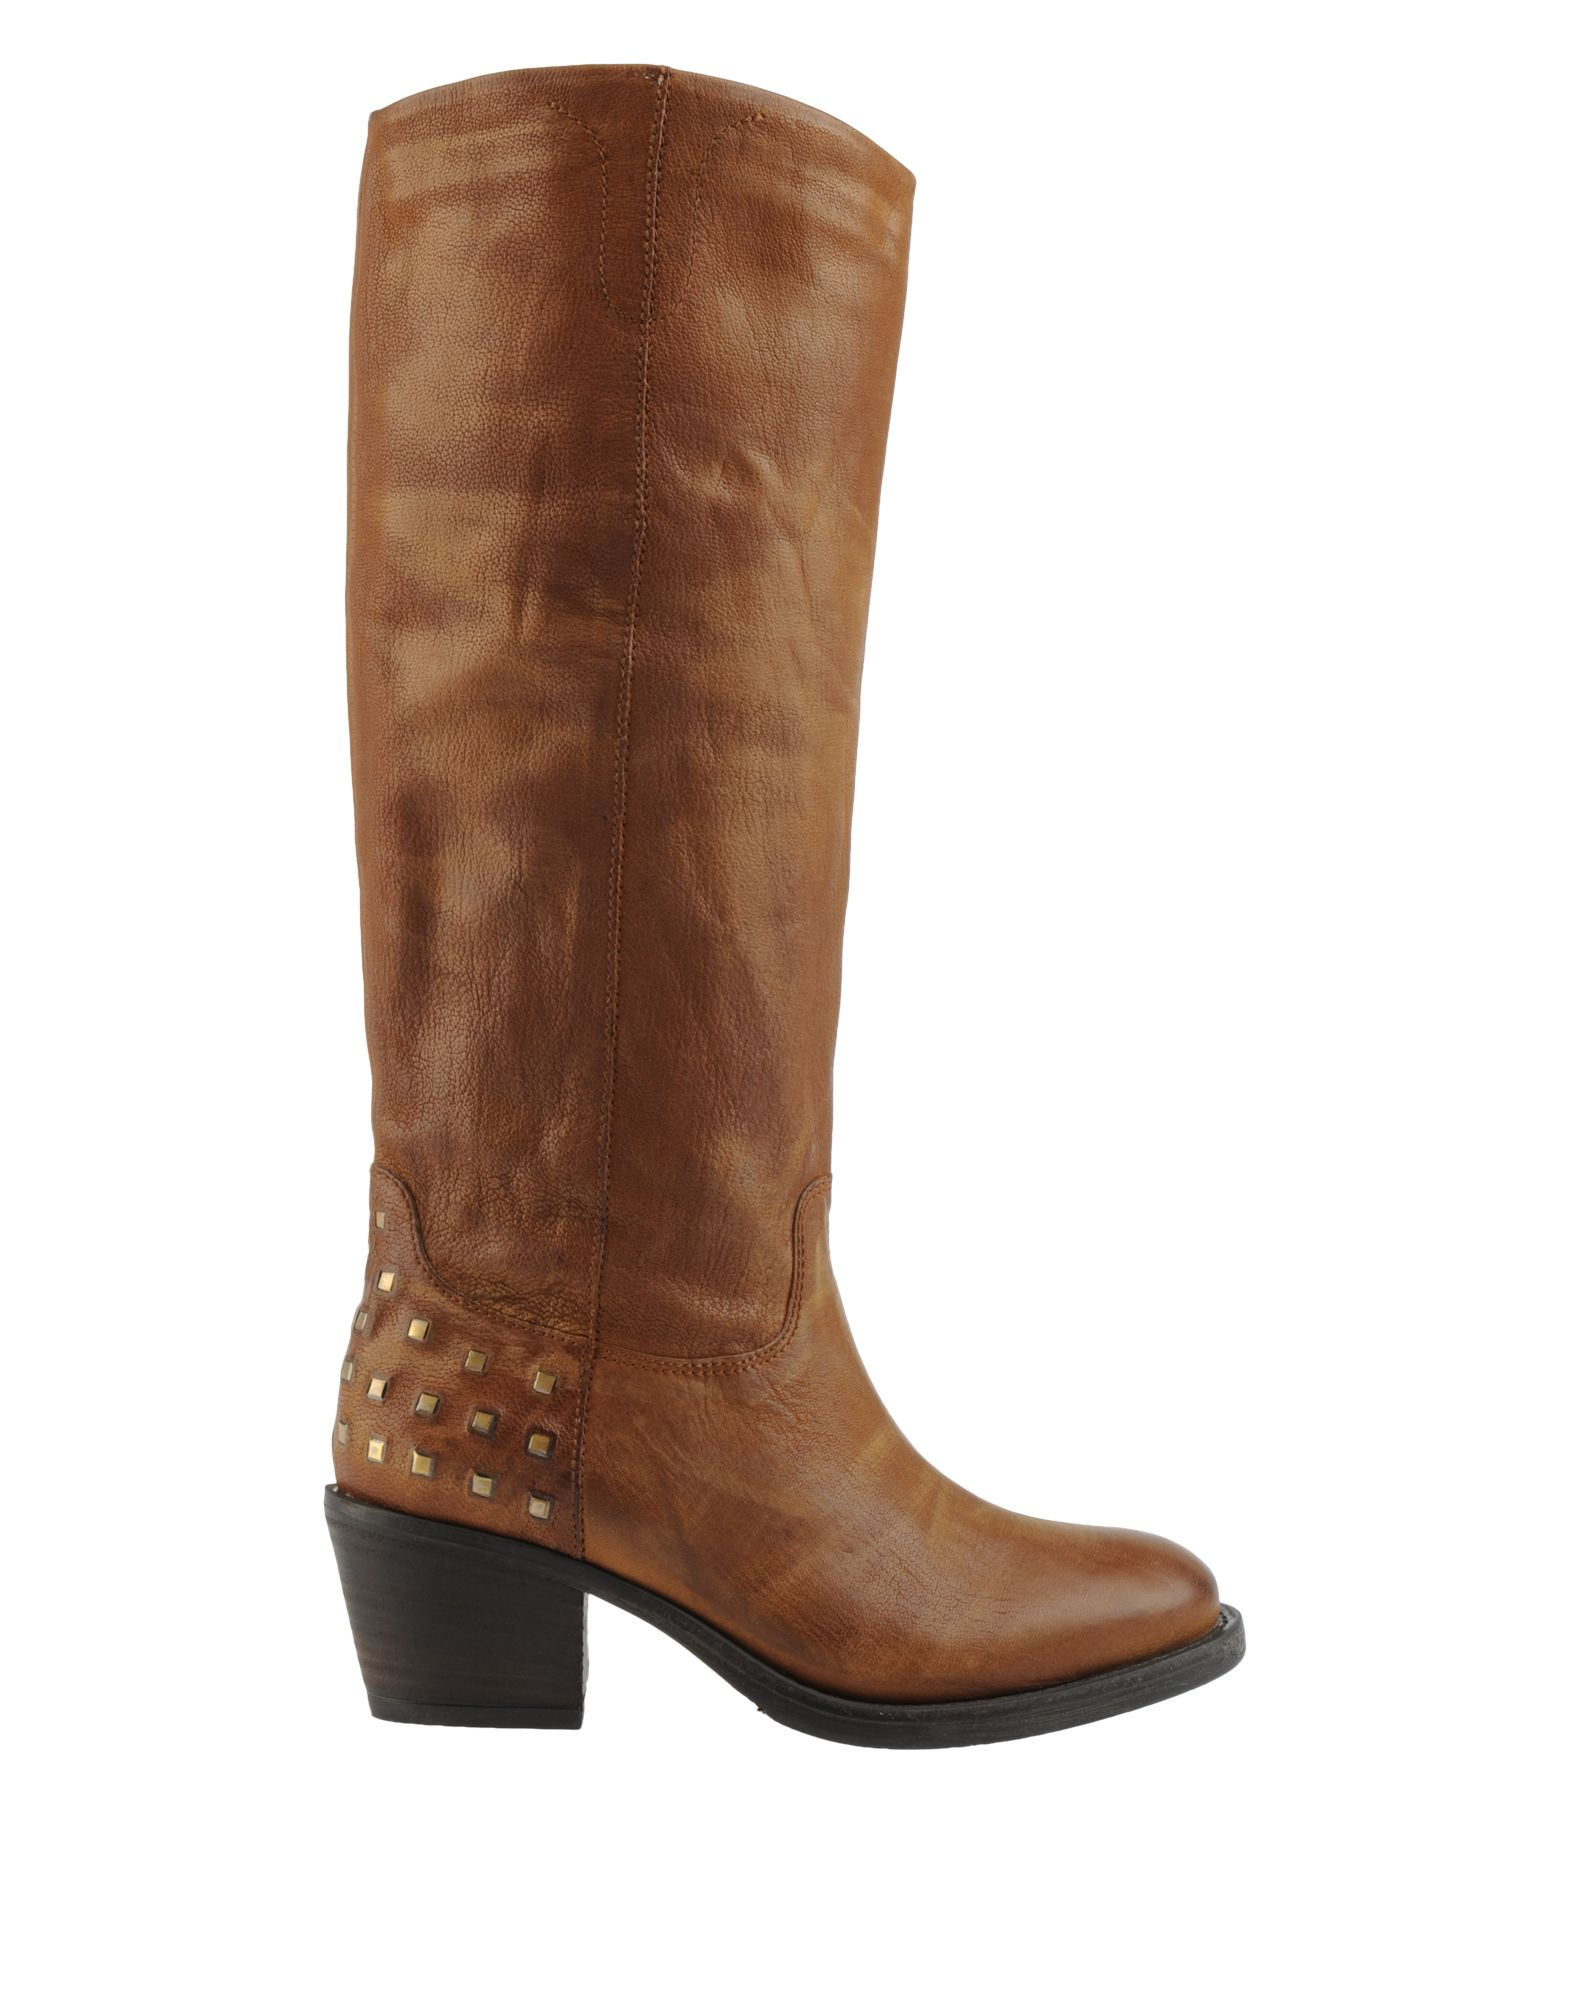 janet janet high heeled boots in brown save 79 lyst